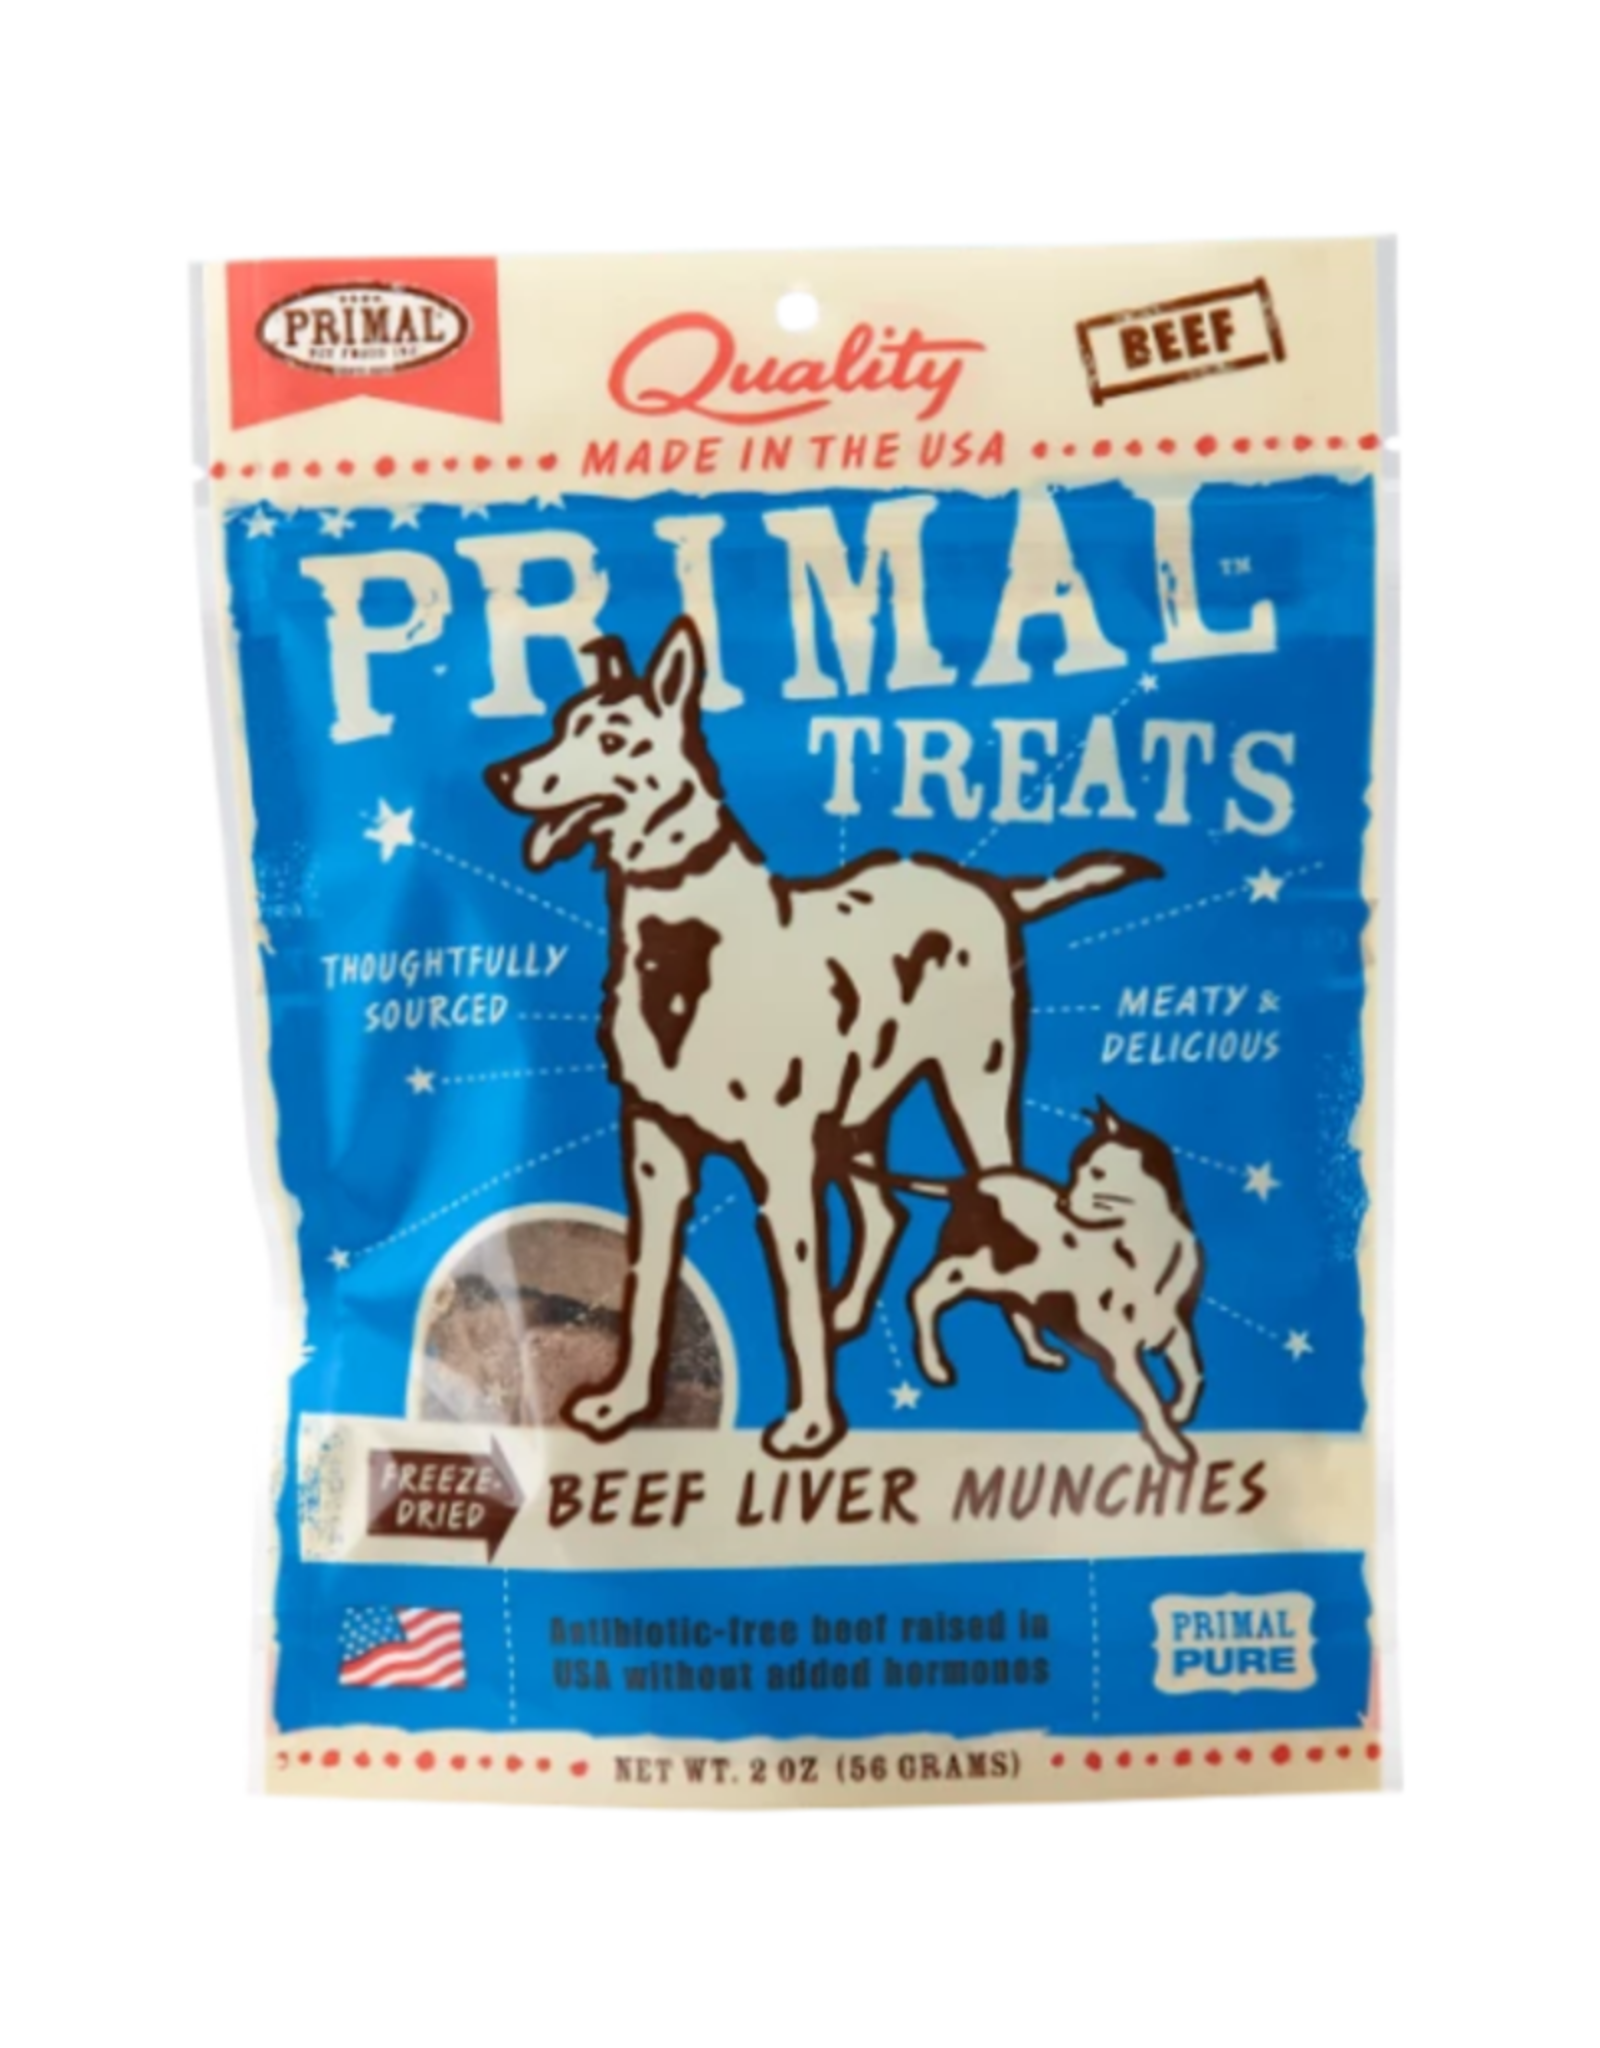 Primal Pet Foods Pork Liver Munchies